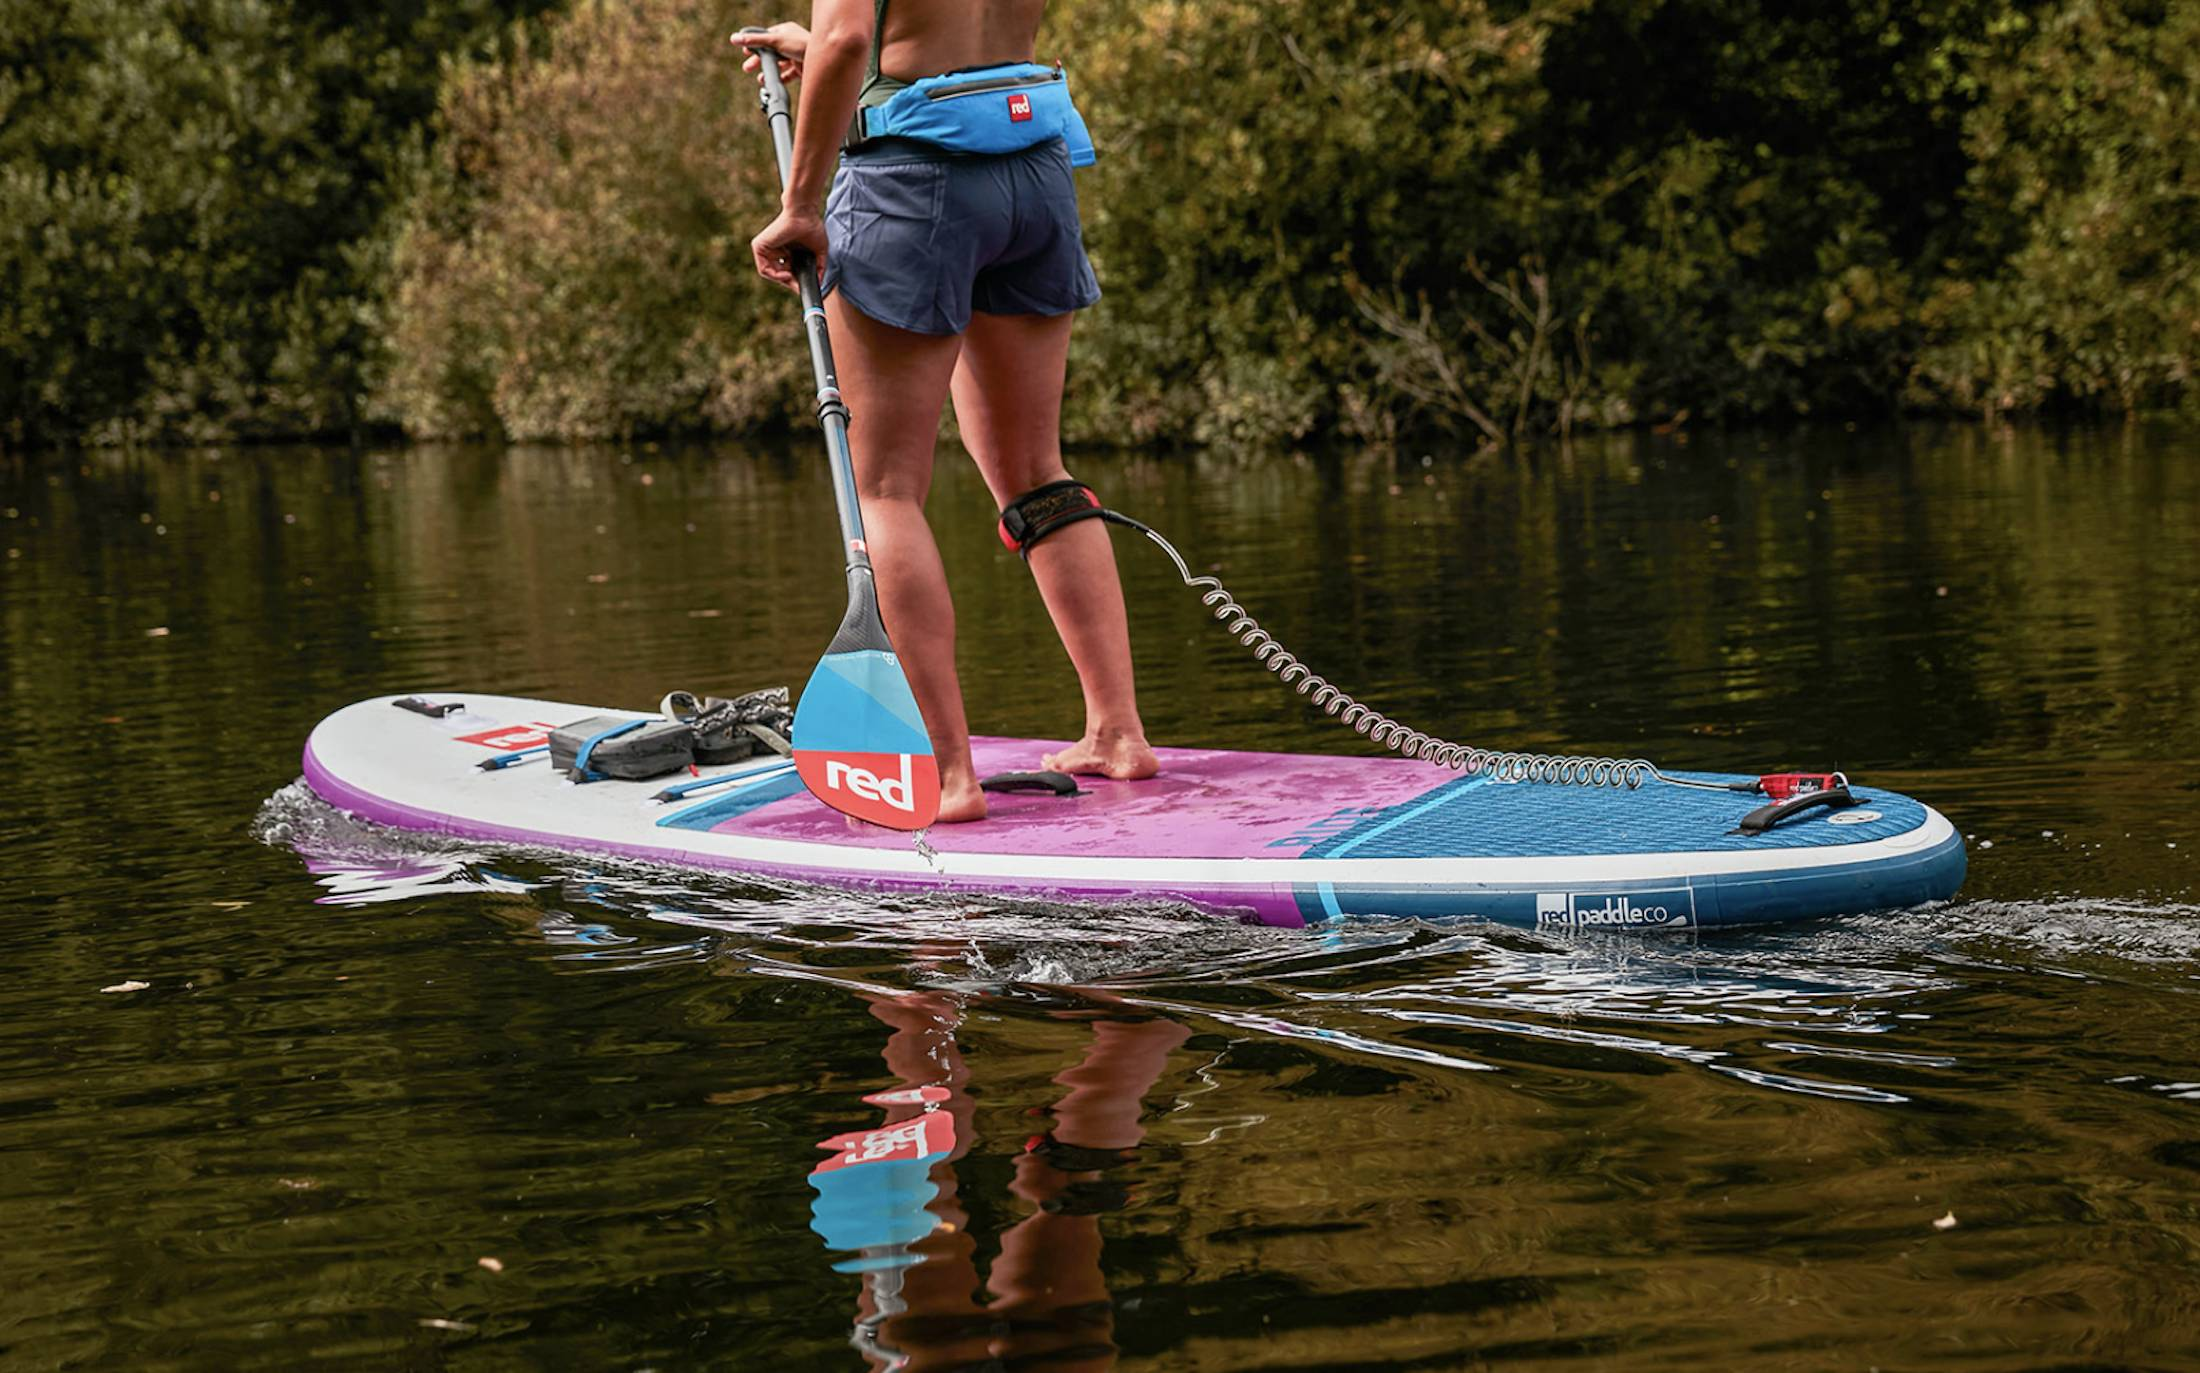 woman in shorts from waist down paddling red and pink board on flatwater